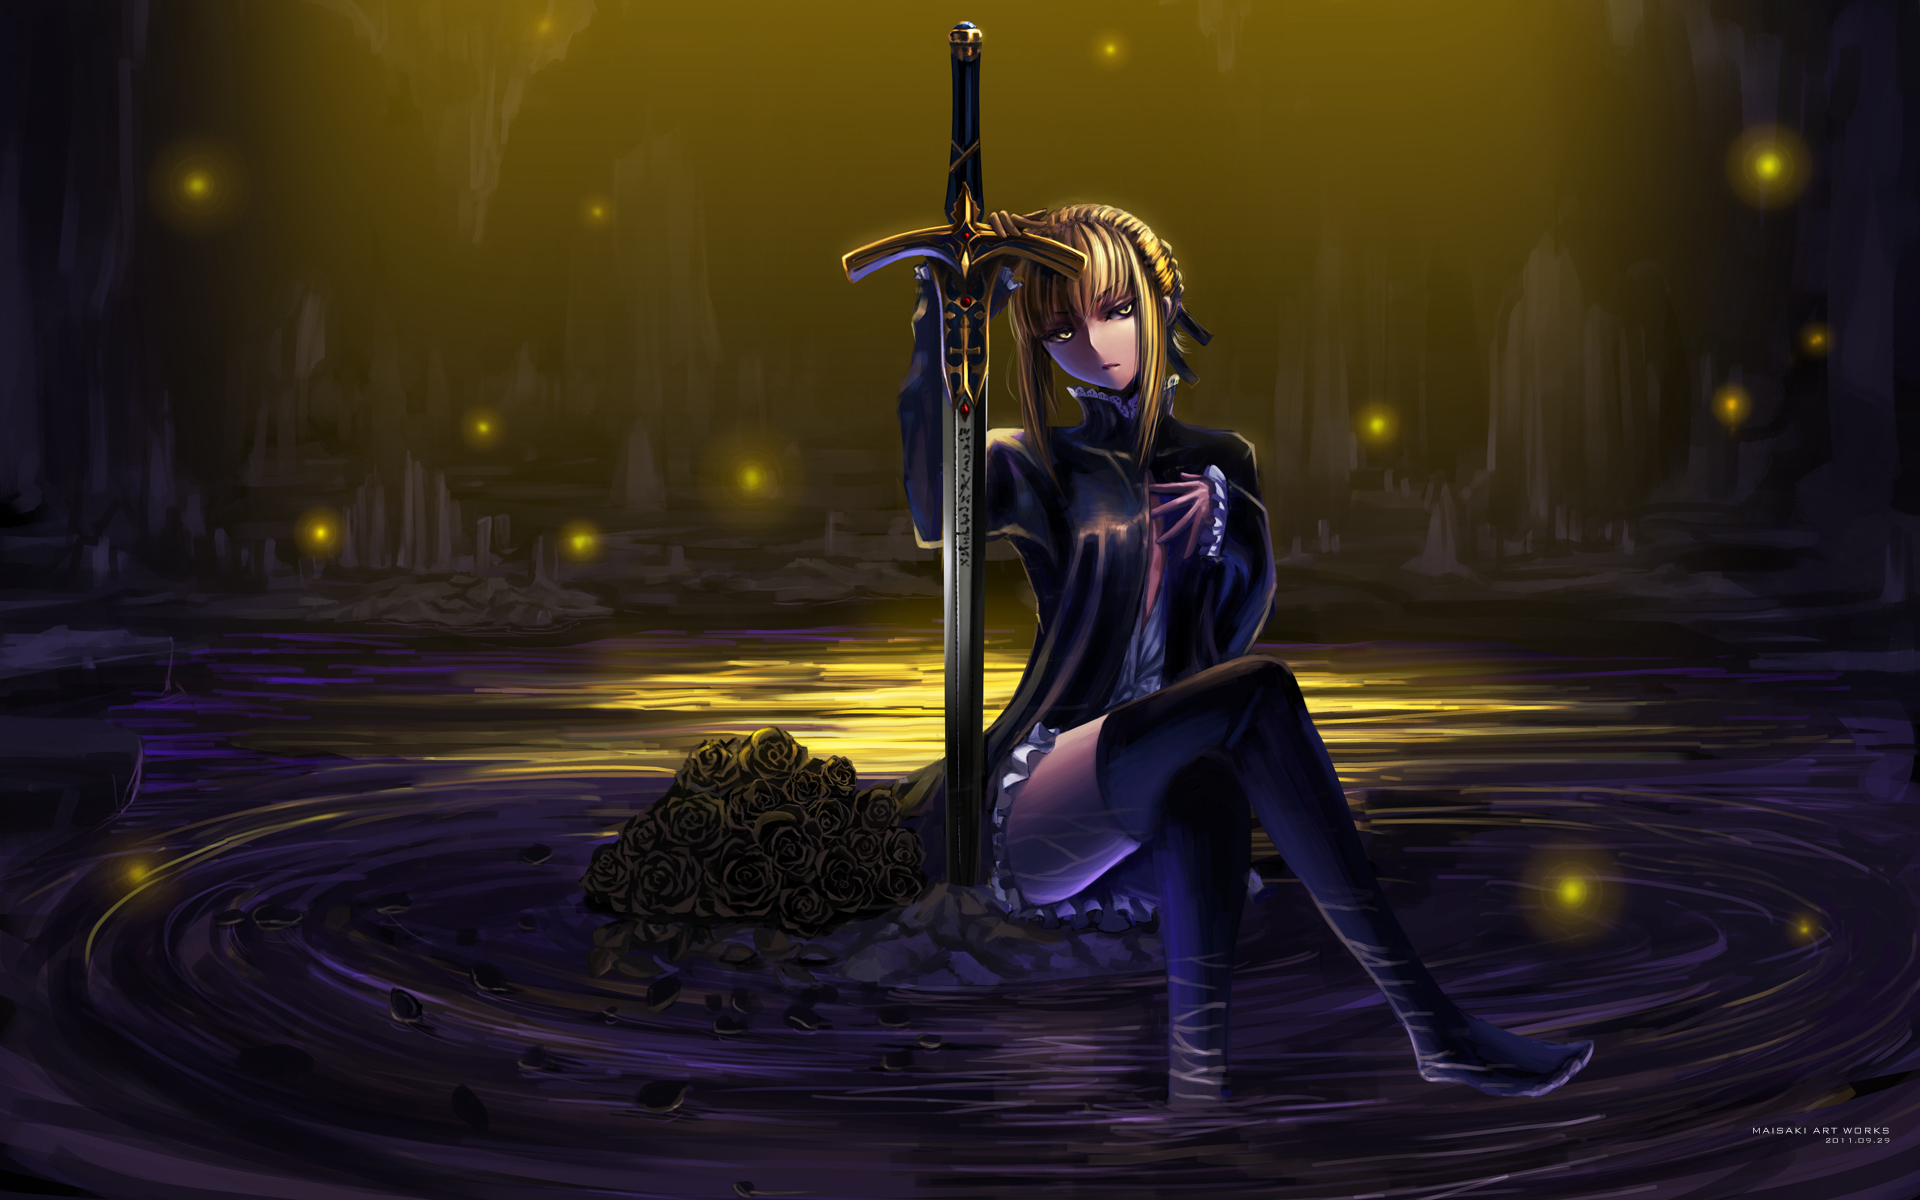 fate stay night flowers maisaki rose saber saber alter sword weapon